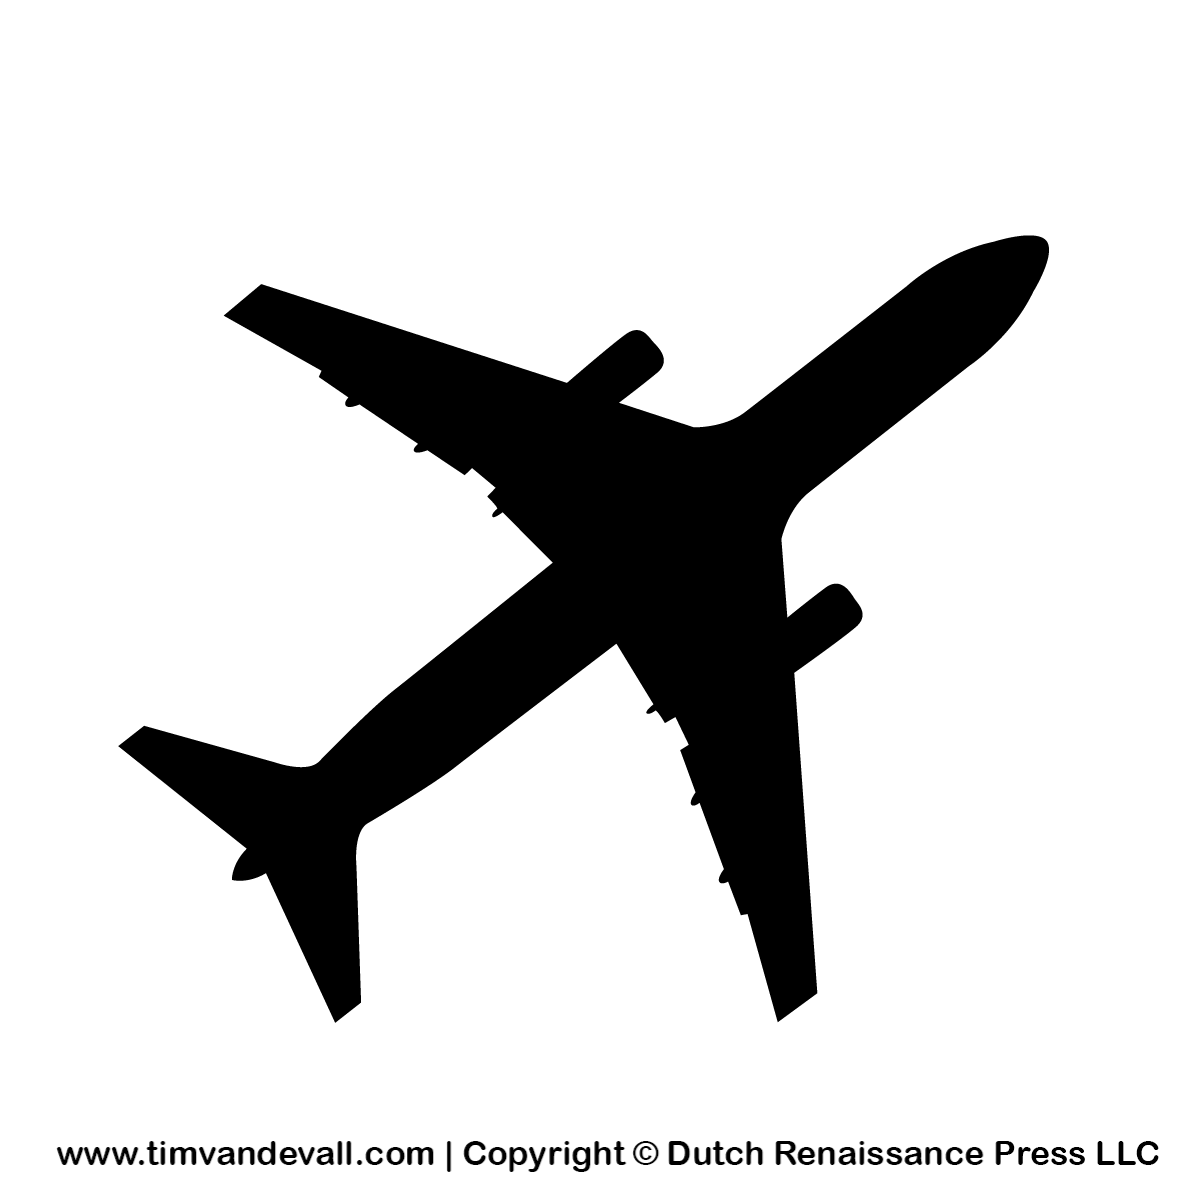 Free Airplane Silhouette Stencil And Outline Clipart For